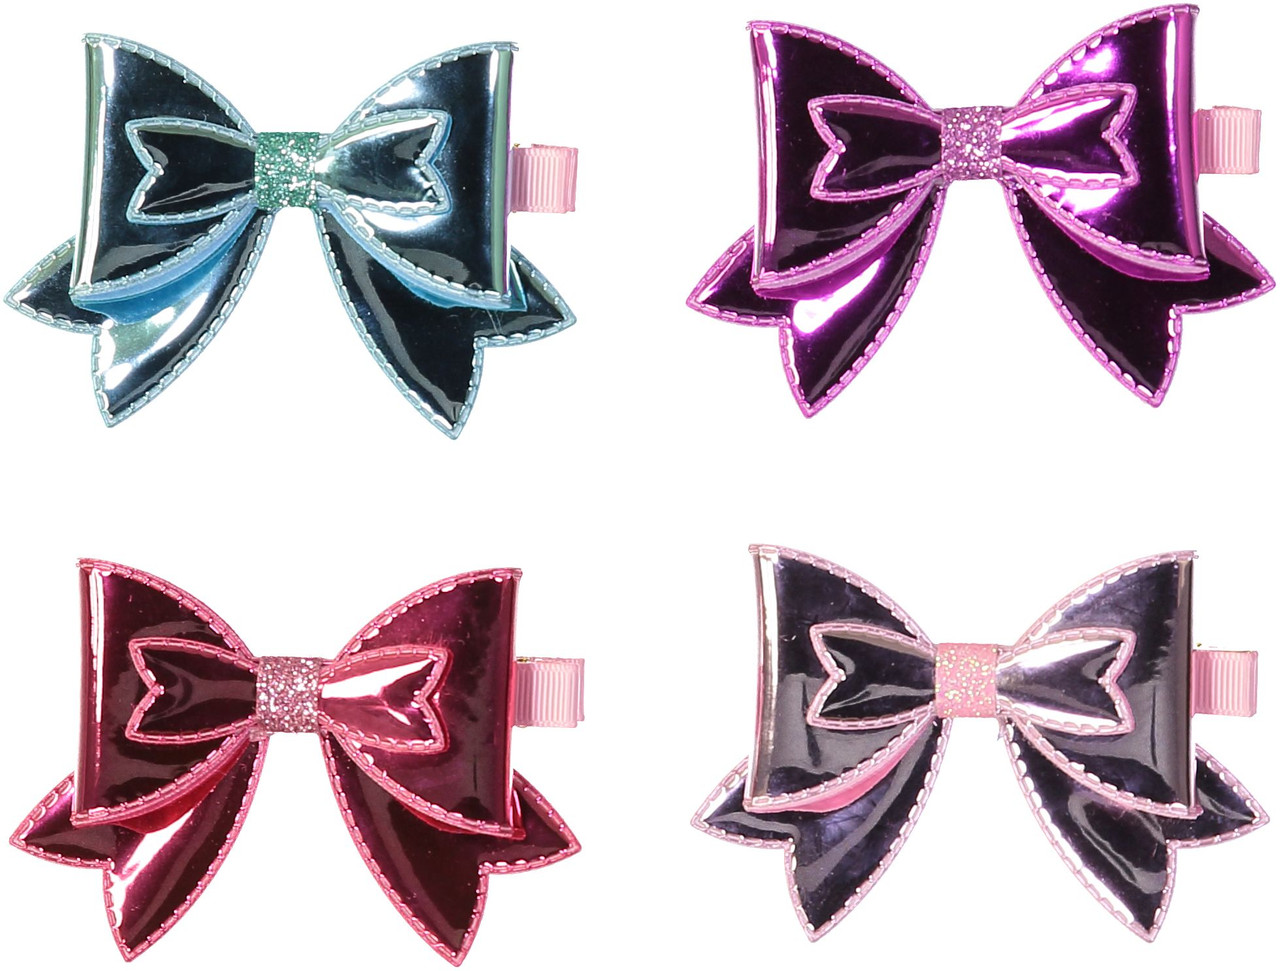 Riqki Metallic Bubble Bow Hair Clip